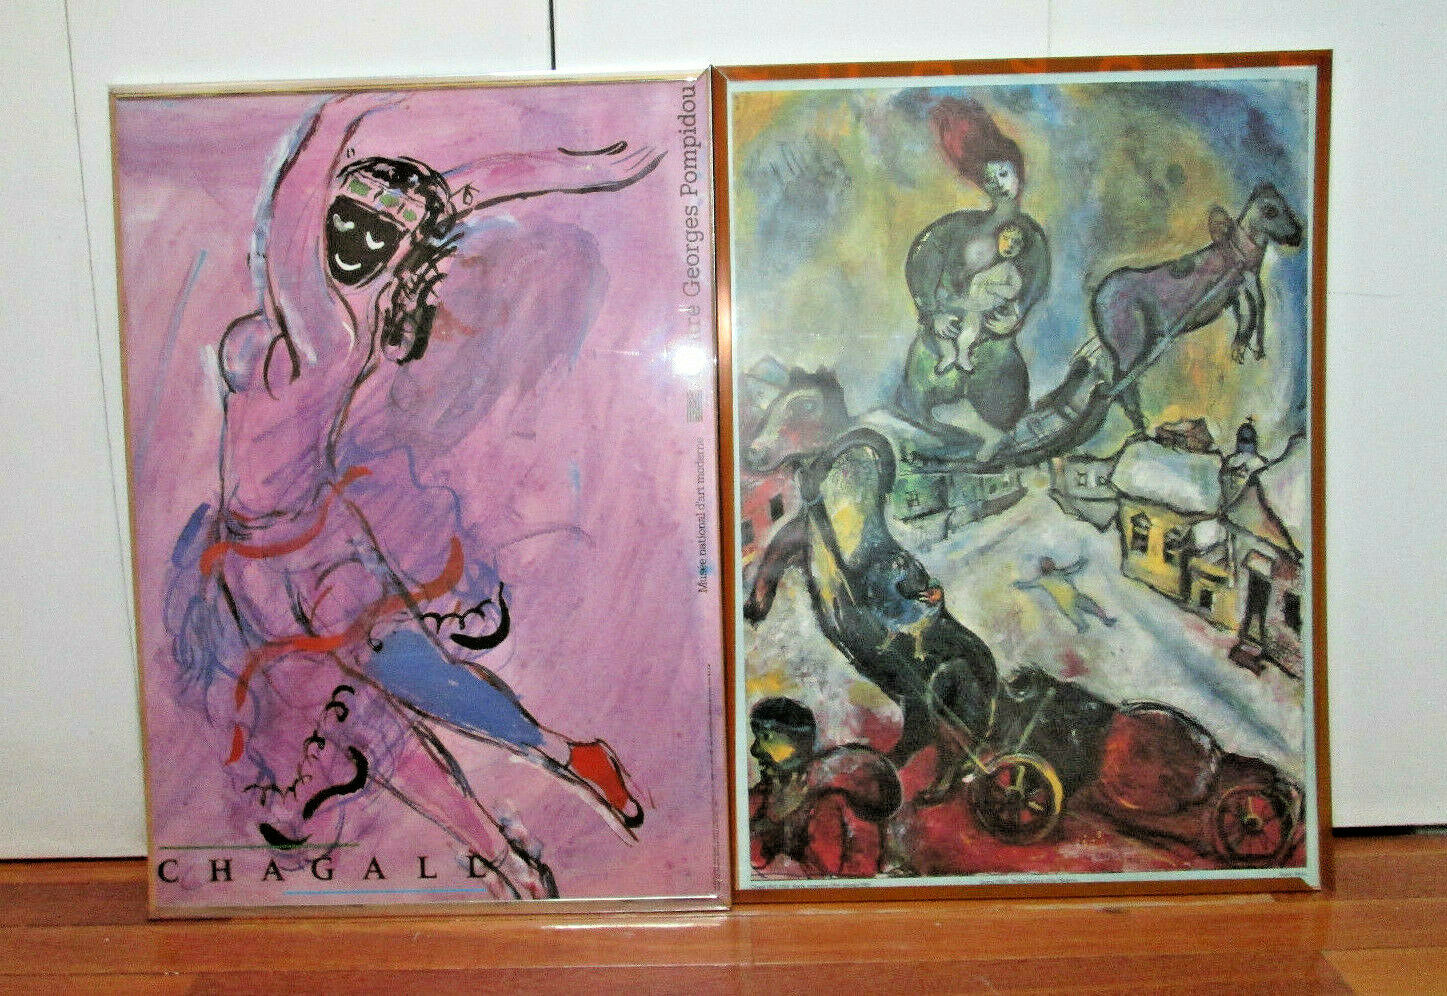 Guerra, Marc Chagall, Rare Offset Lithograph Art Prints, and L'Oiseau de Feu,